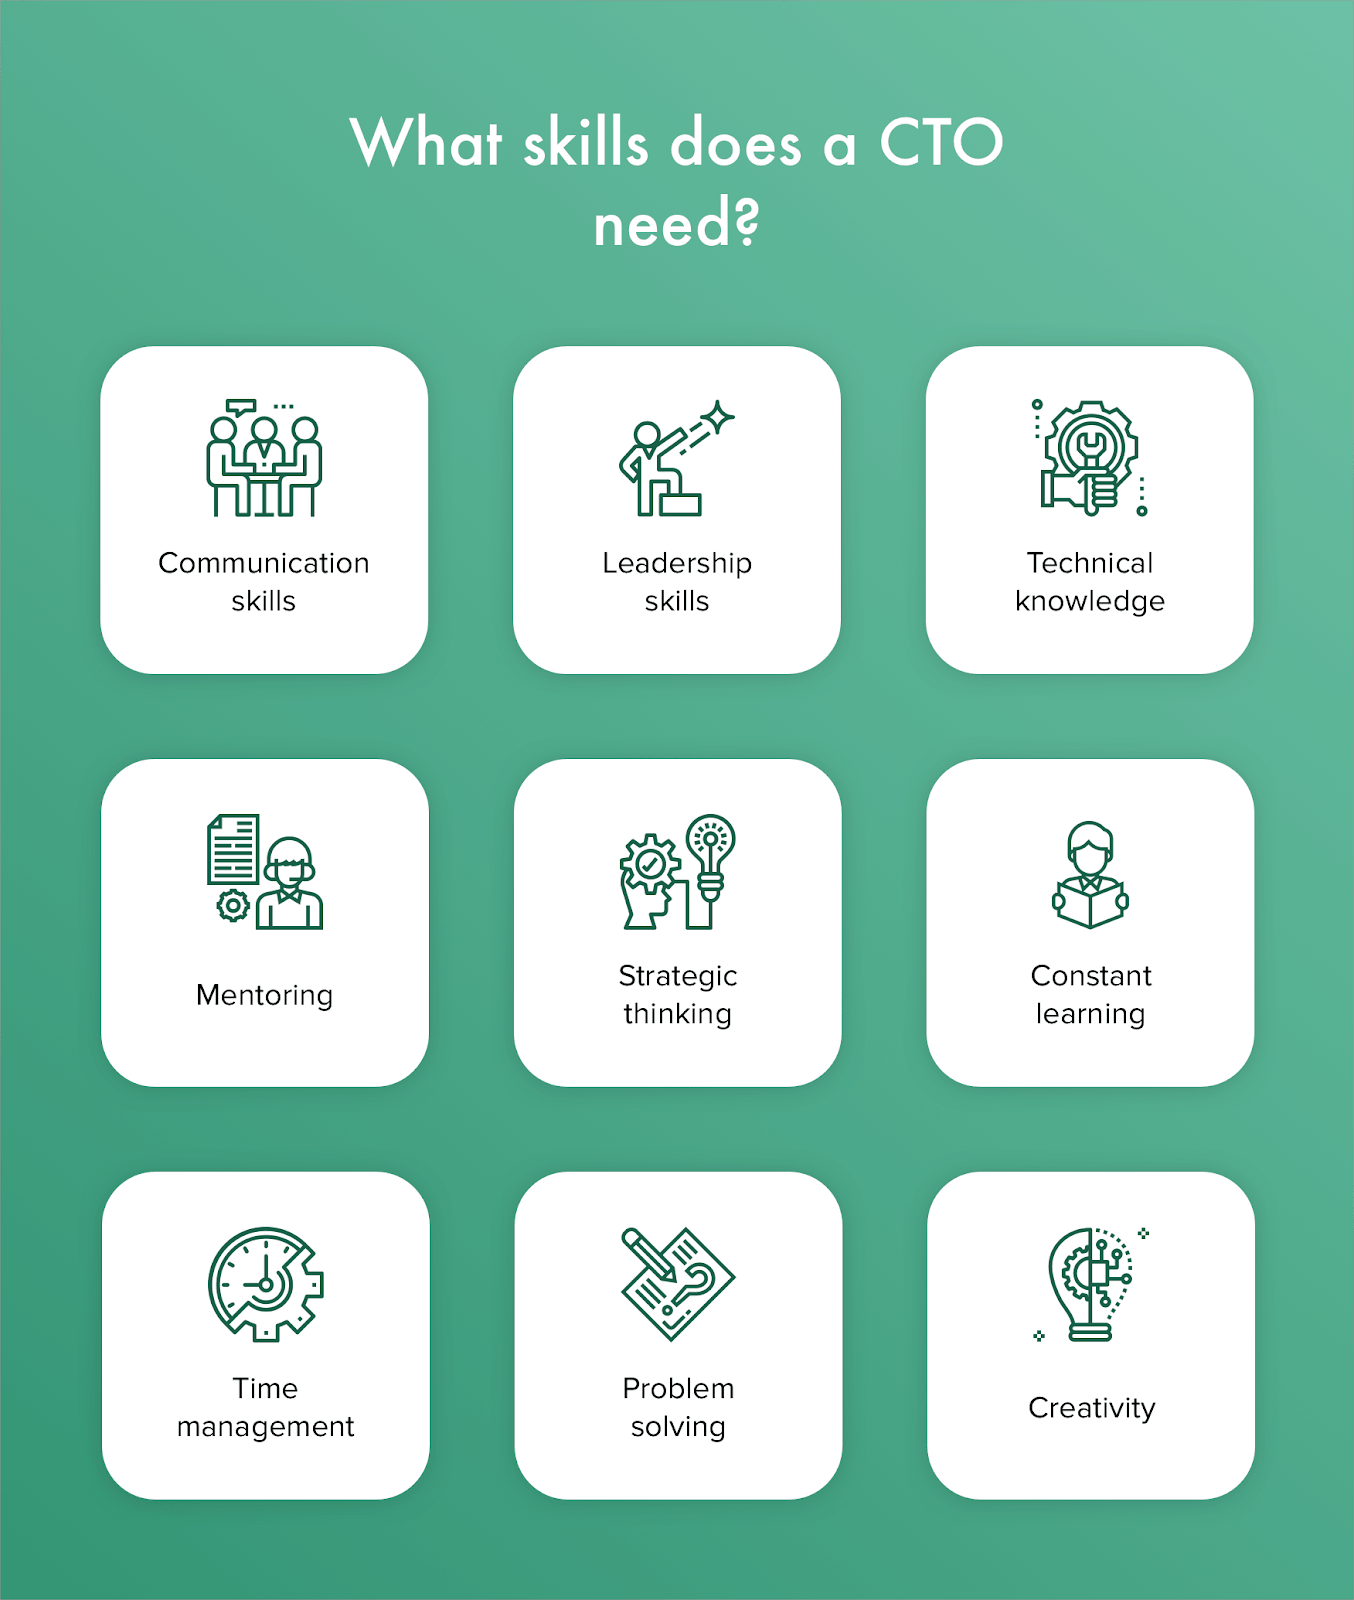 The skills a CTO needs